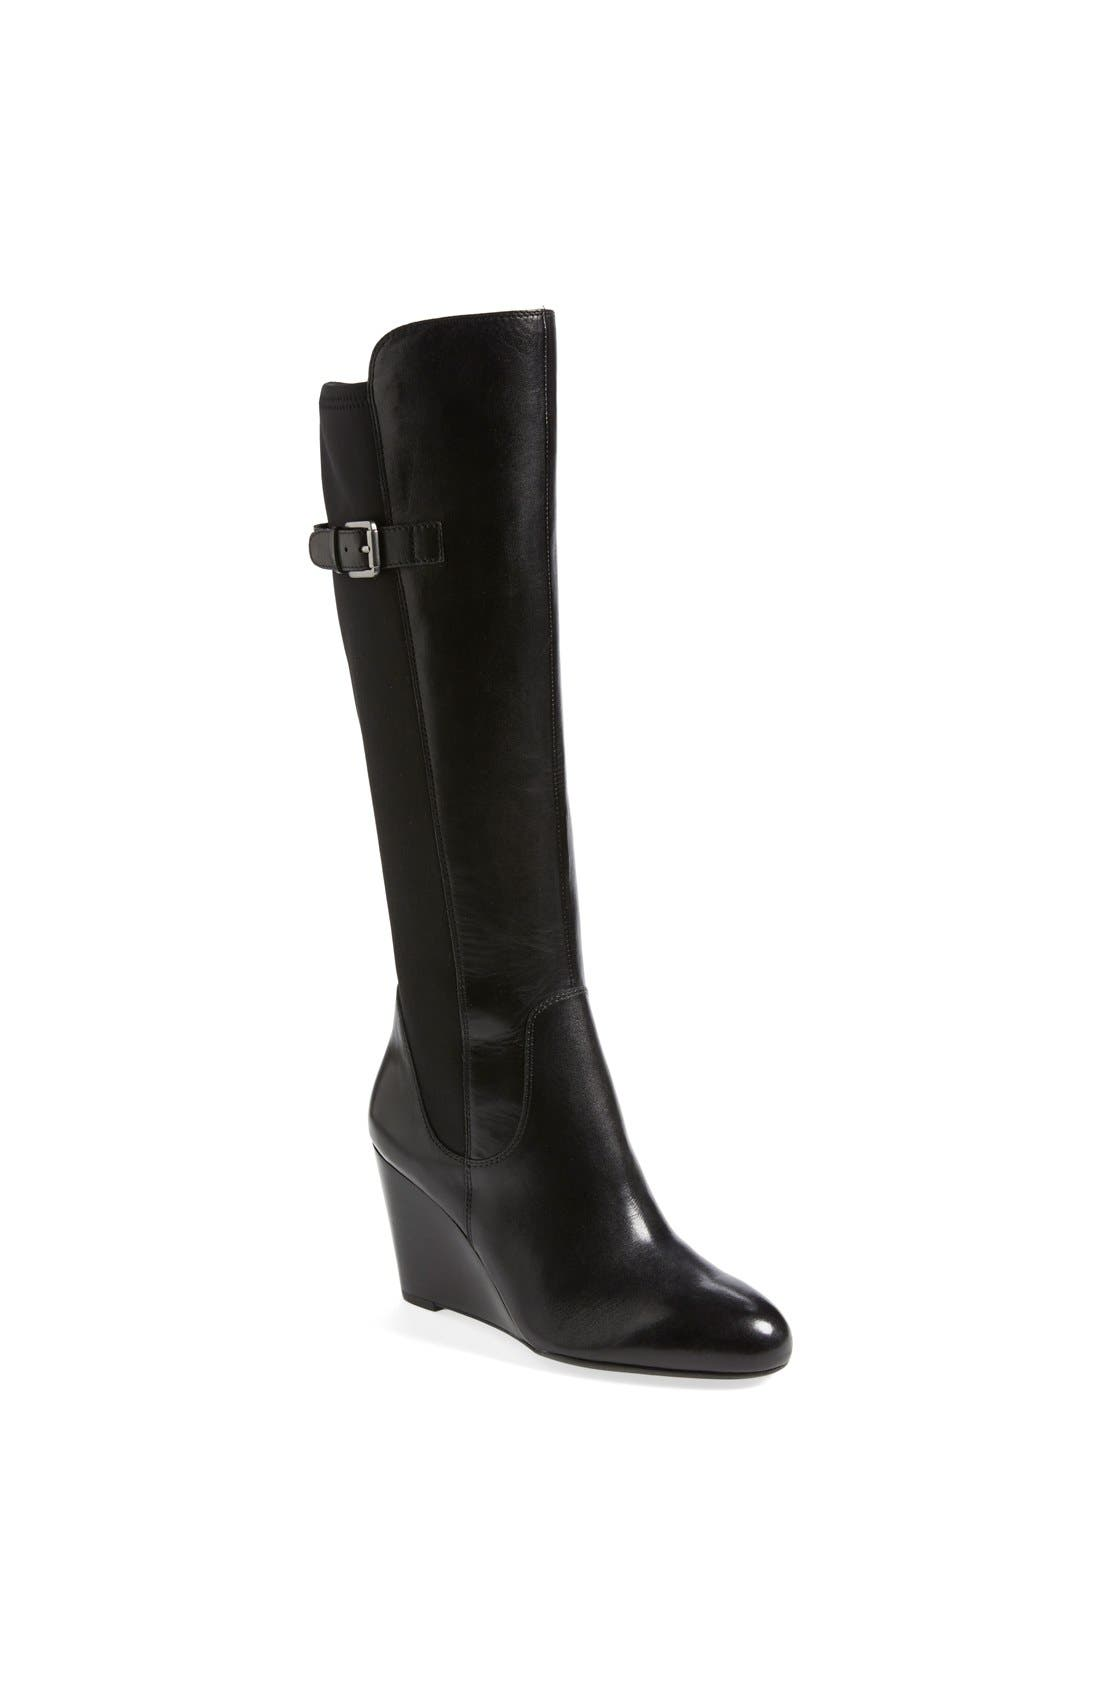 Main Image - Franco Sarto 'Obelisk' Knee High Wedge Boot (Online Only) (Women)